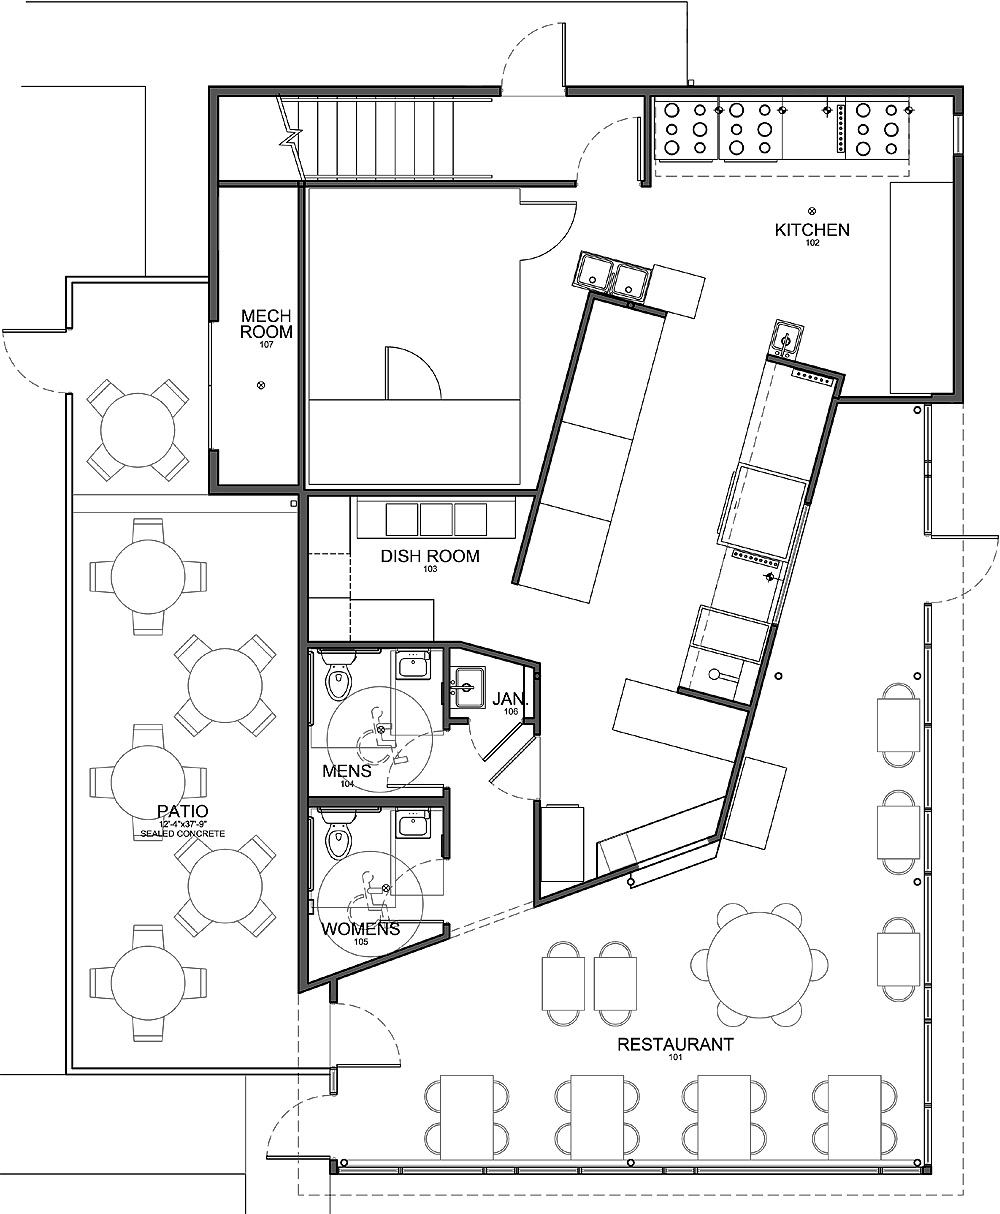 Sample Kitchen Floor Plans: Acapulco Mexican Restaurant About Set For Permitting